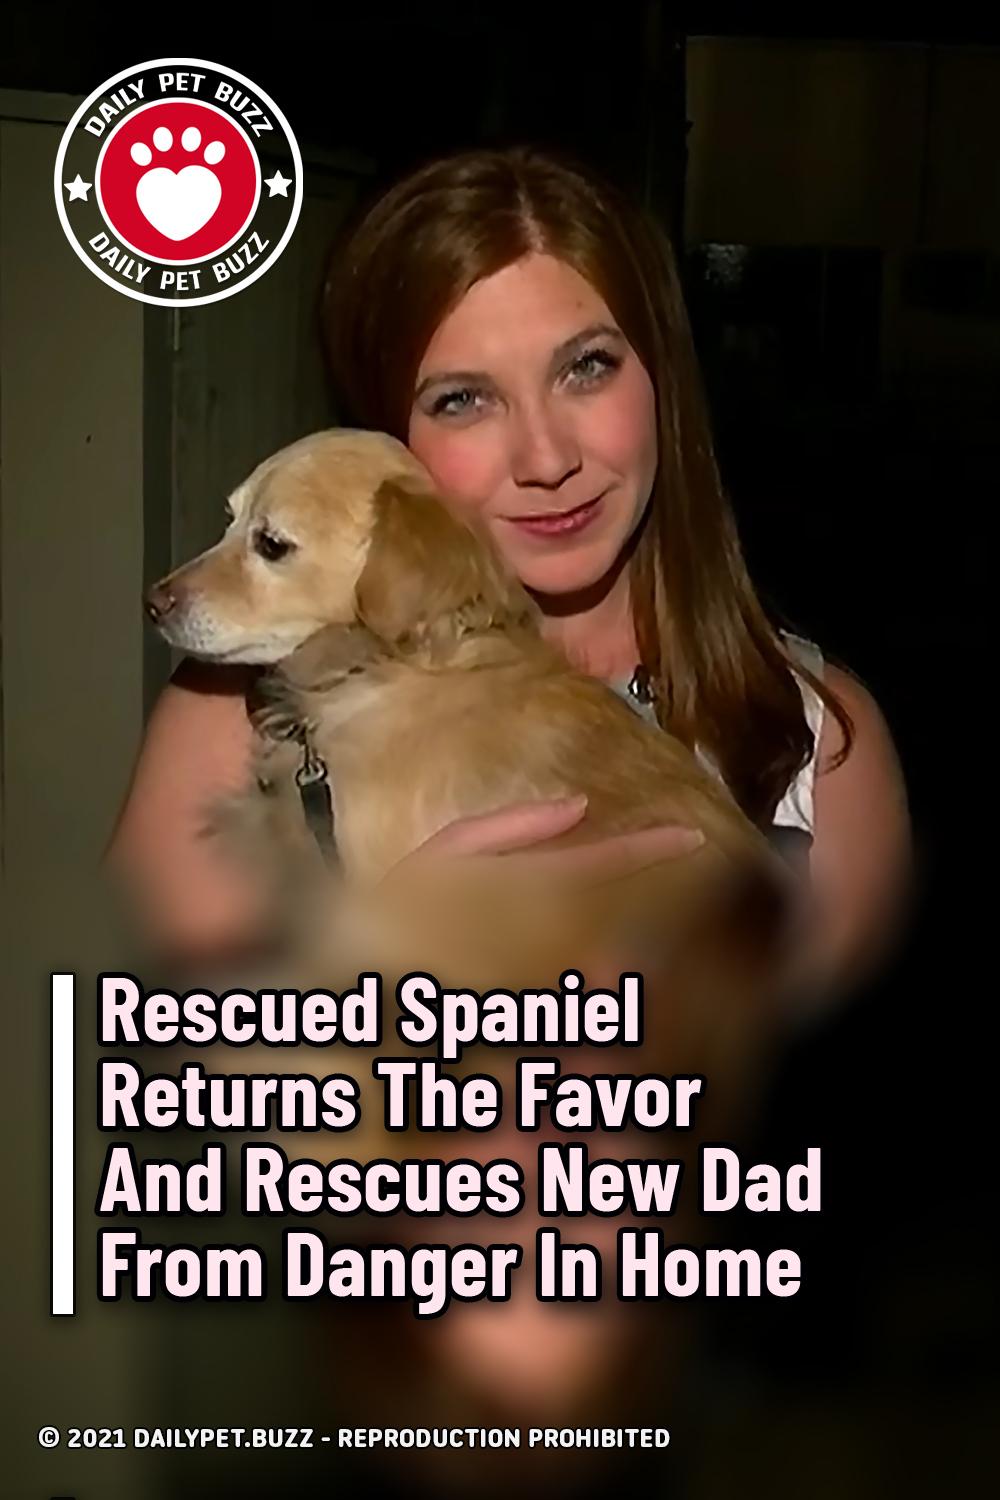 Rescued Spaniel Returns The Favor And Rescues New Dad From Danger In Home